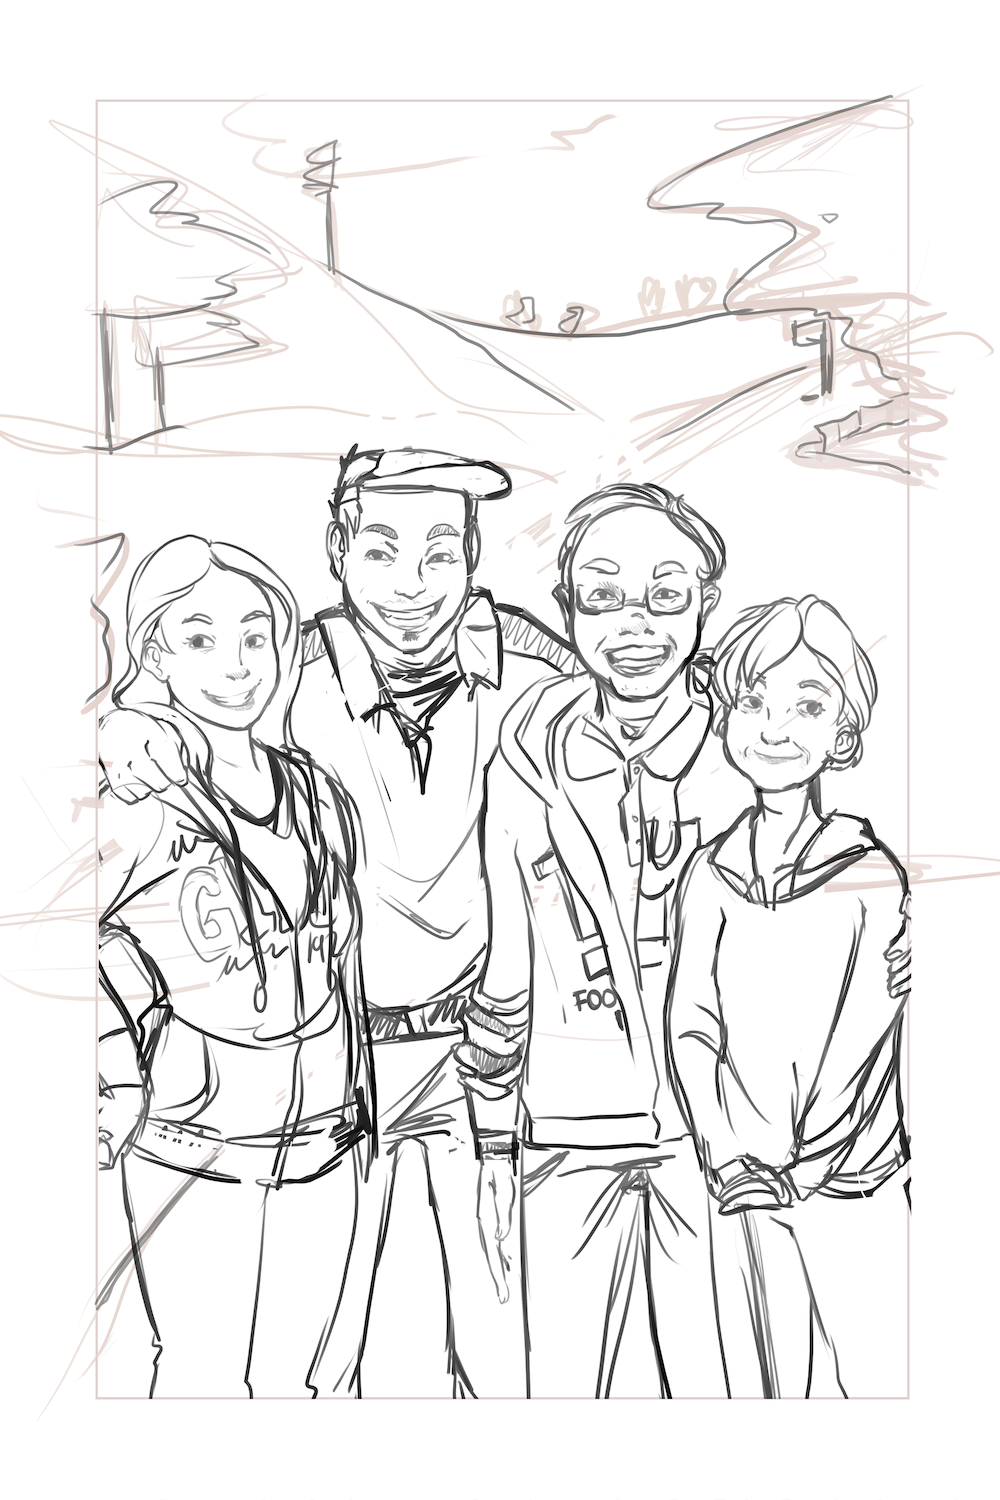 WIP Portrait of the Ikegami Family by AruRmz Zoomed In